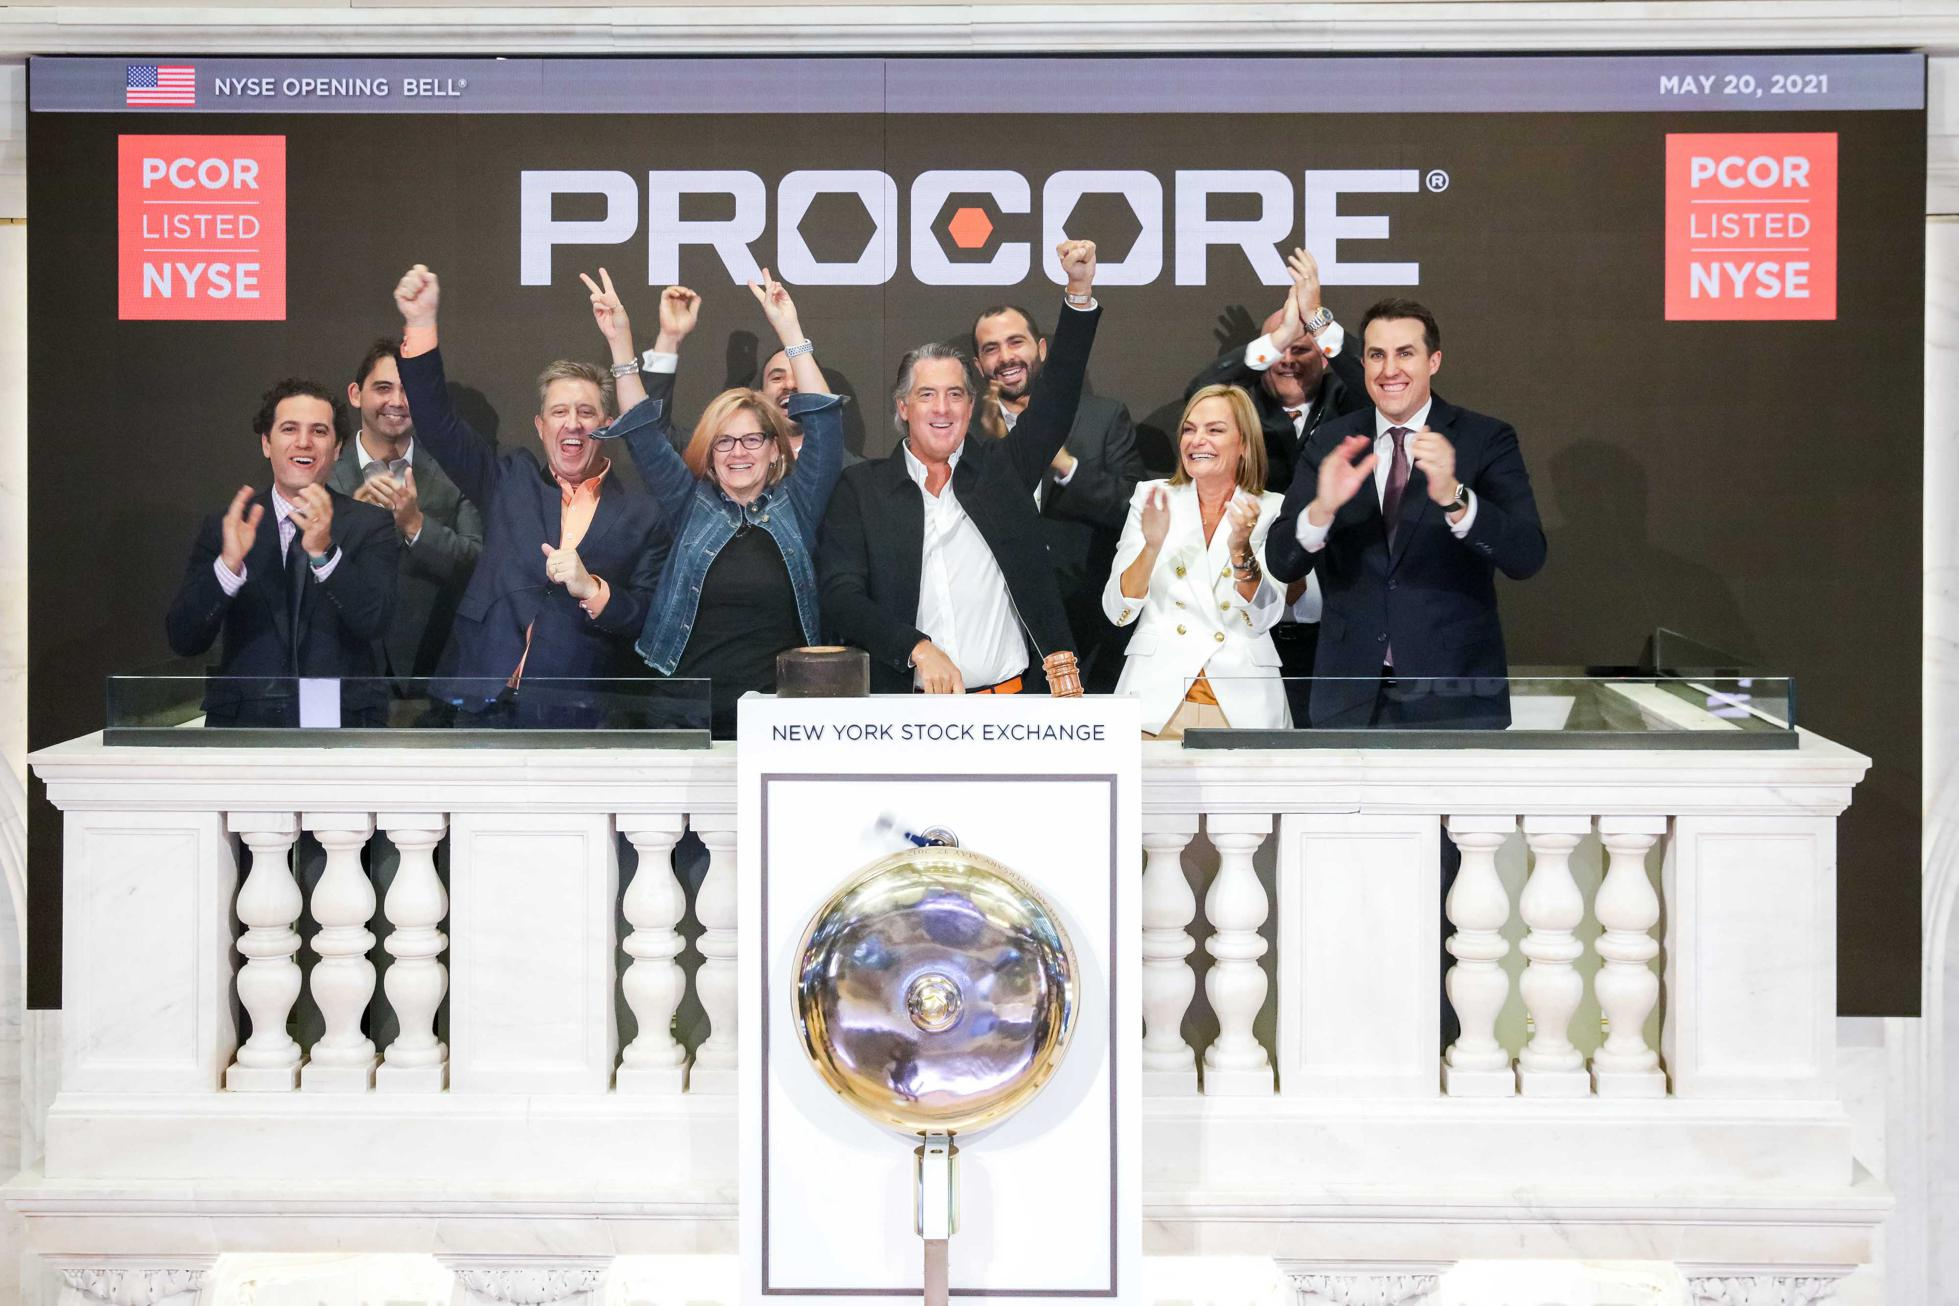 Procore CEO Tooey Courtemanche (center) rings the bell of the New York Stock Exchange.